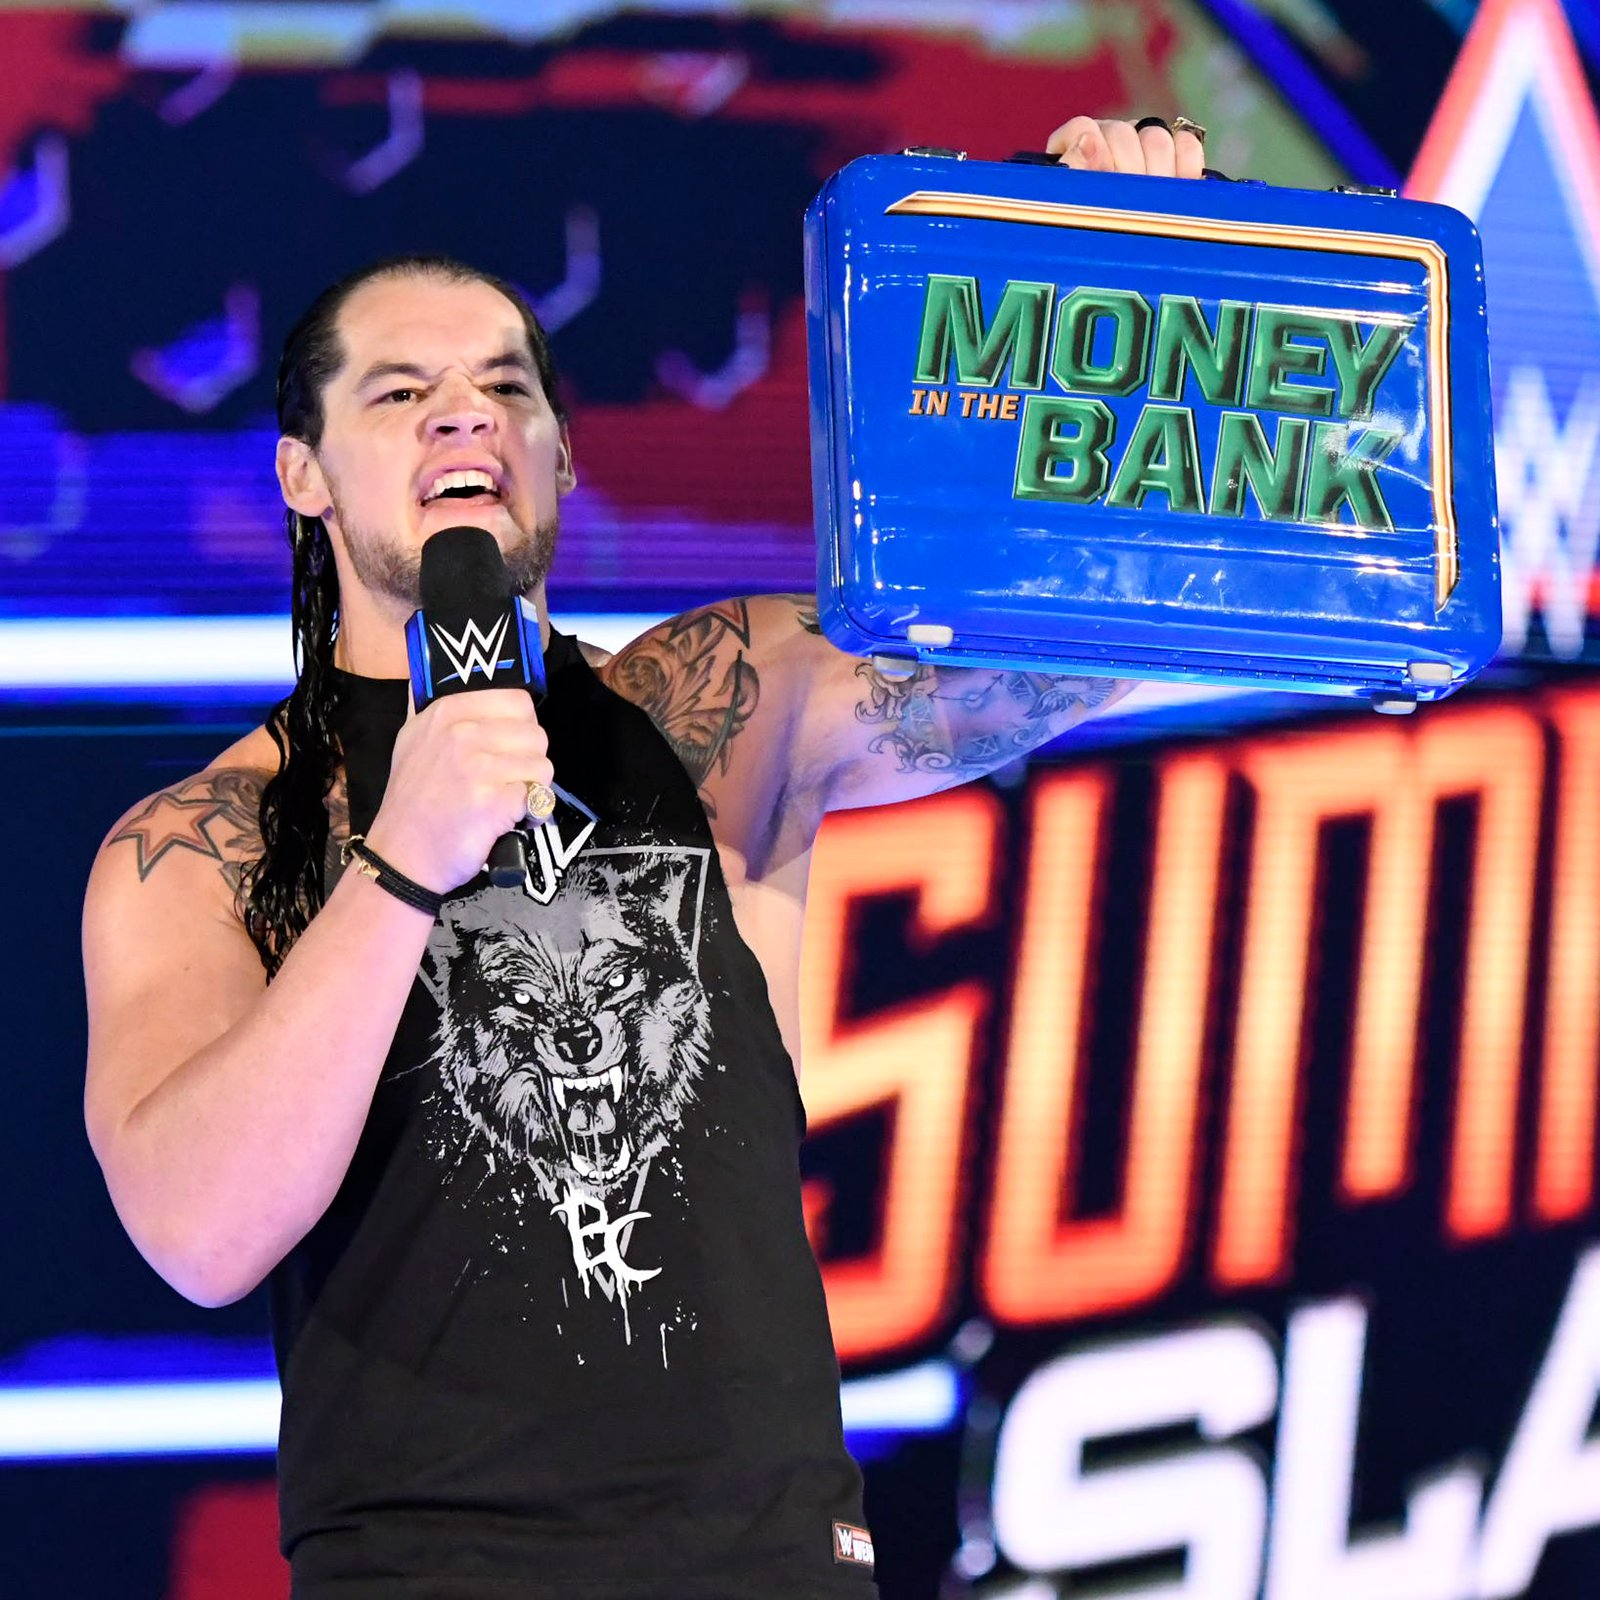 ... but The Lone Wolf reminds Cena that he is Mr. Money in the Bank and says the 16-time World Champion doesn't have anything he wants.